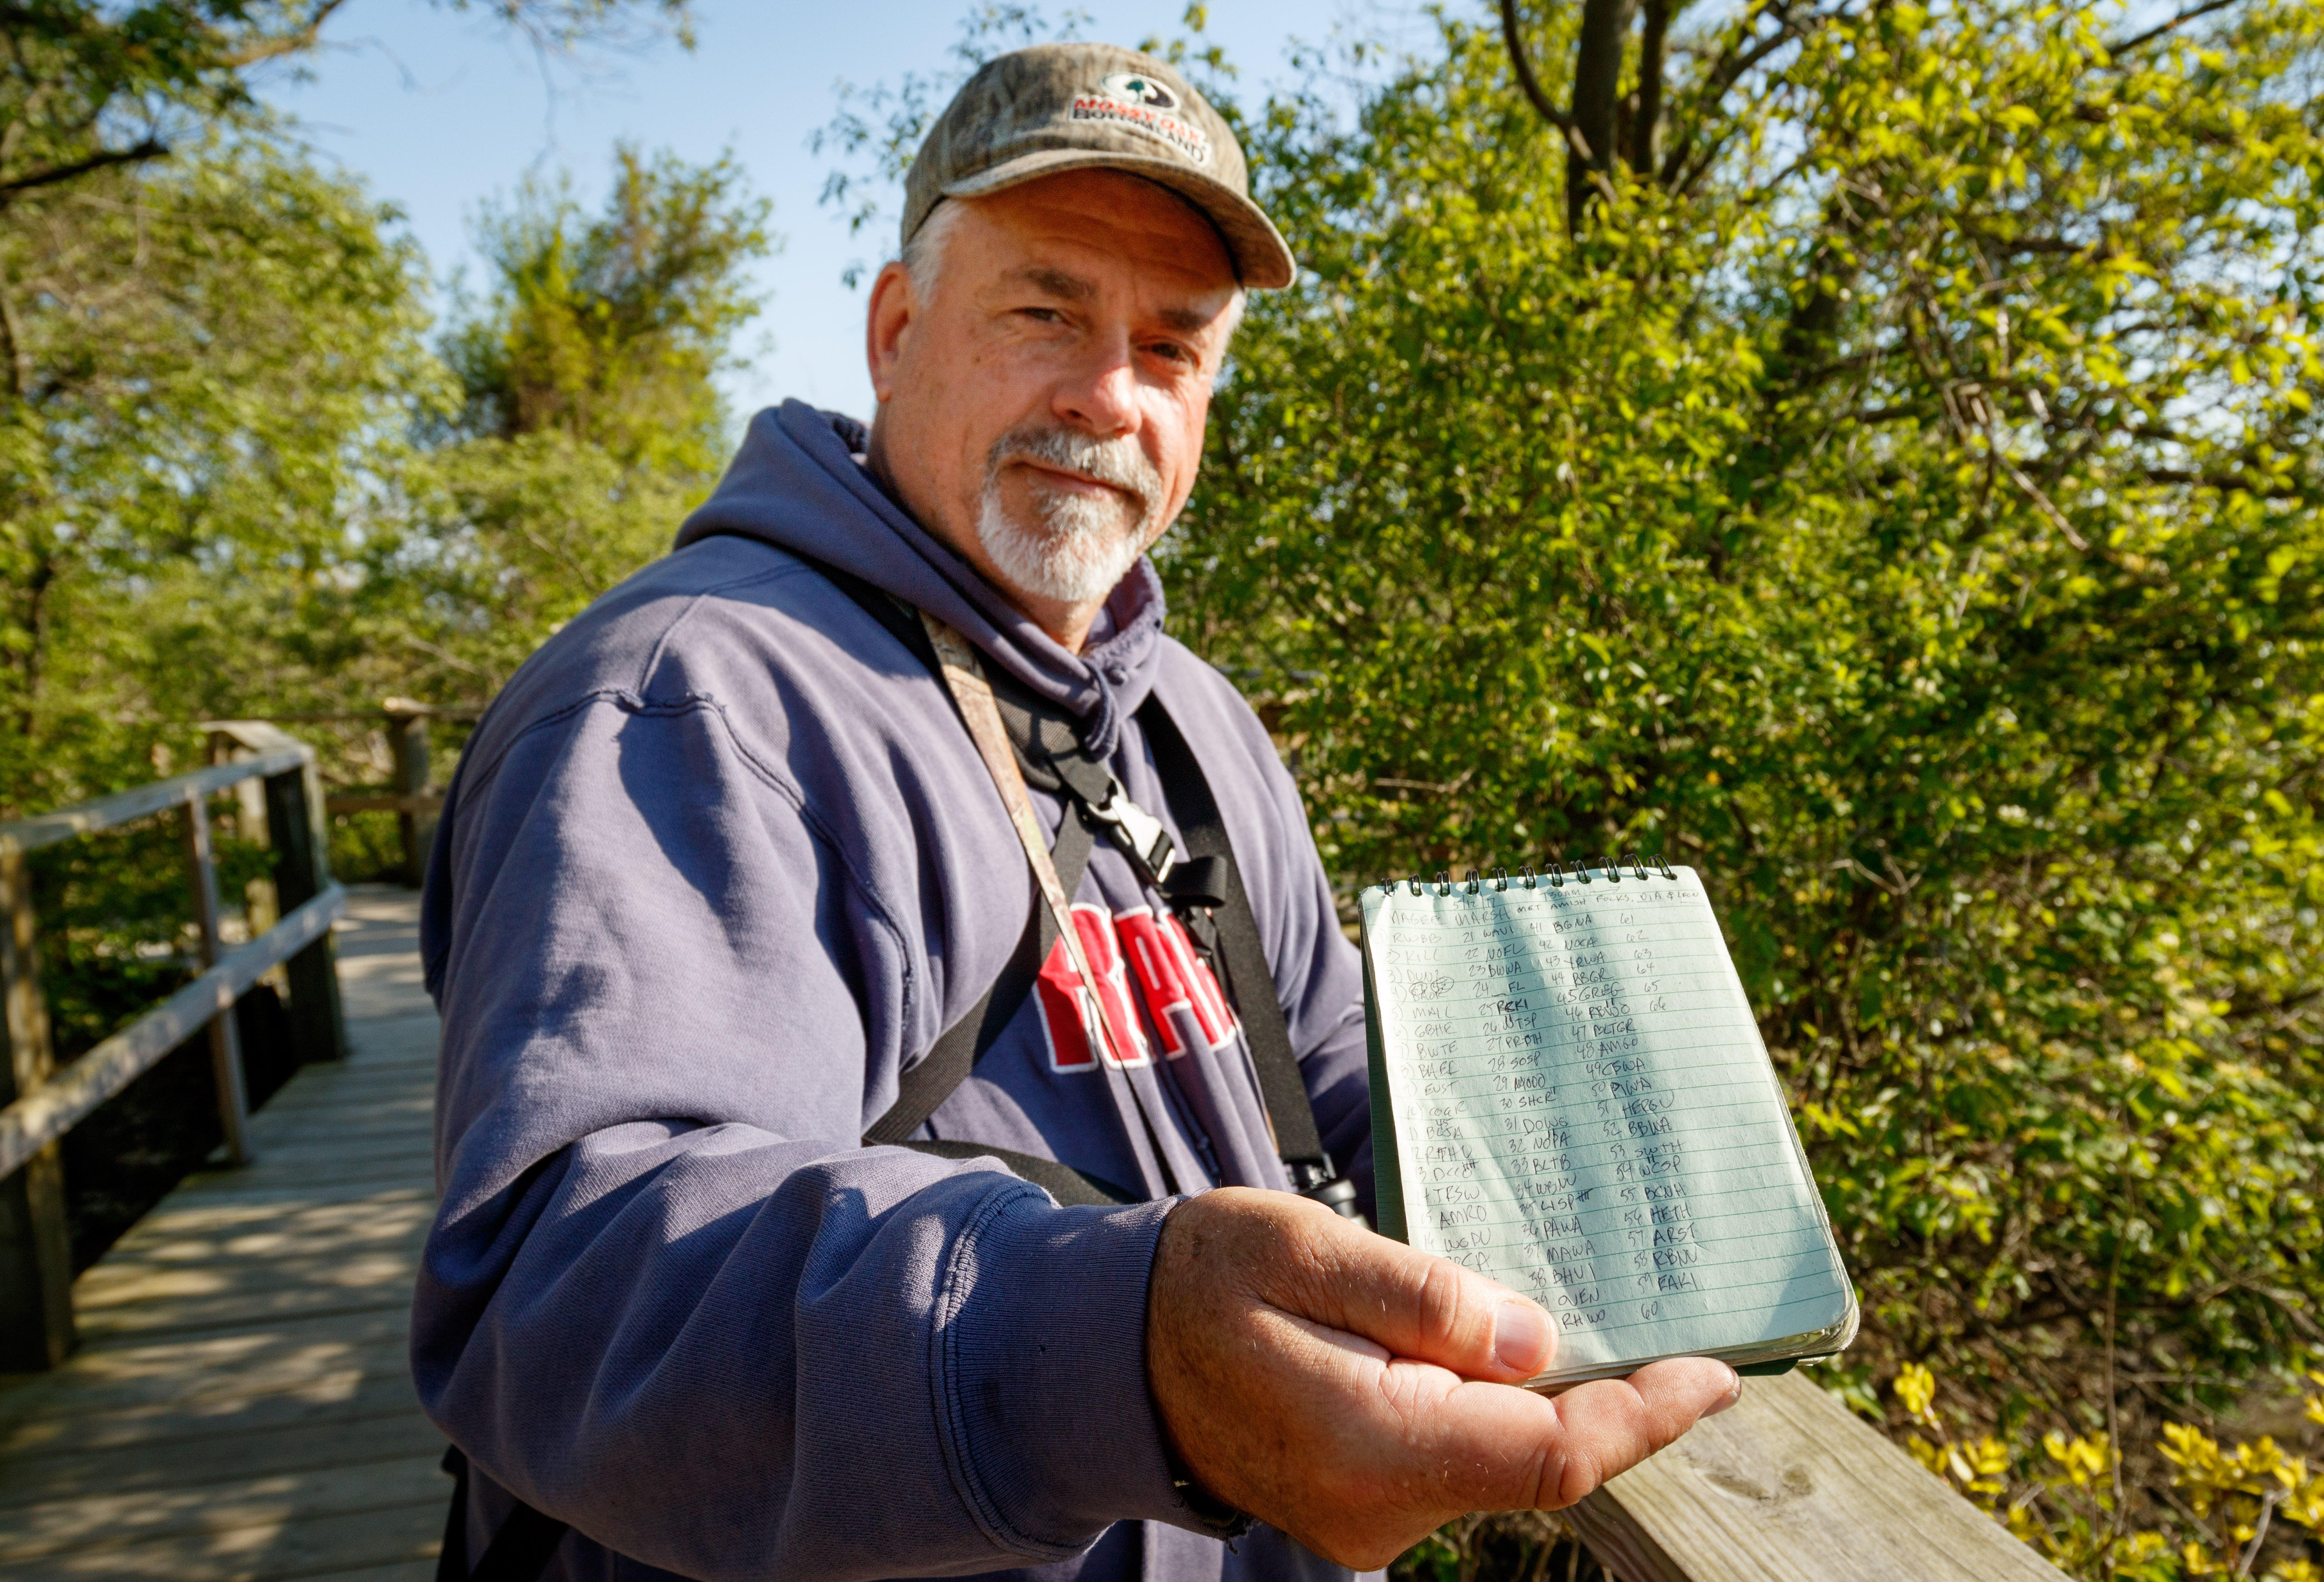 Connecticut birder Tim Thompson keeps track of birds in a notebook, but then logs the species on the eBird service so other birders can benefit from his sightings.